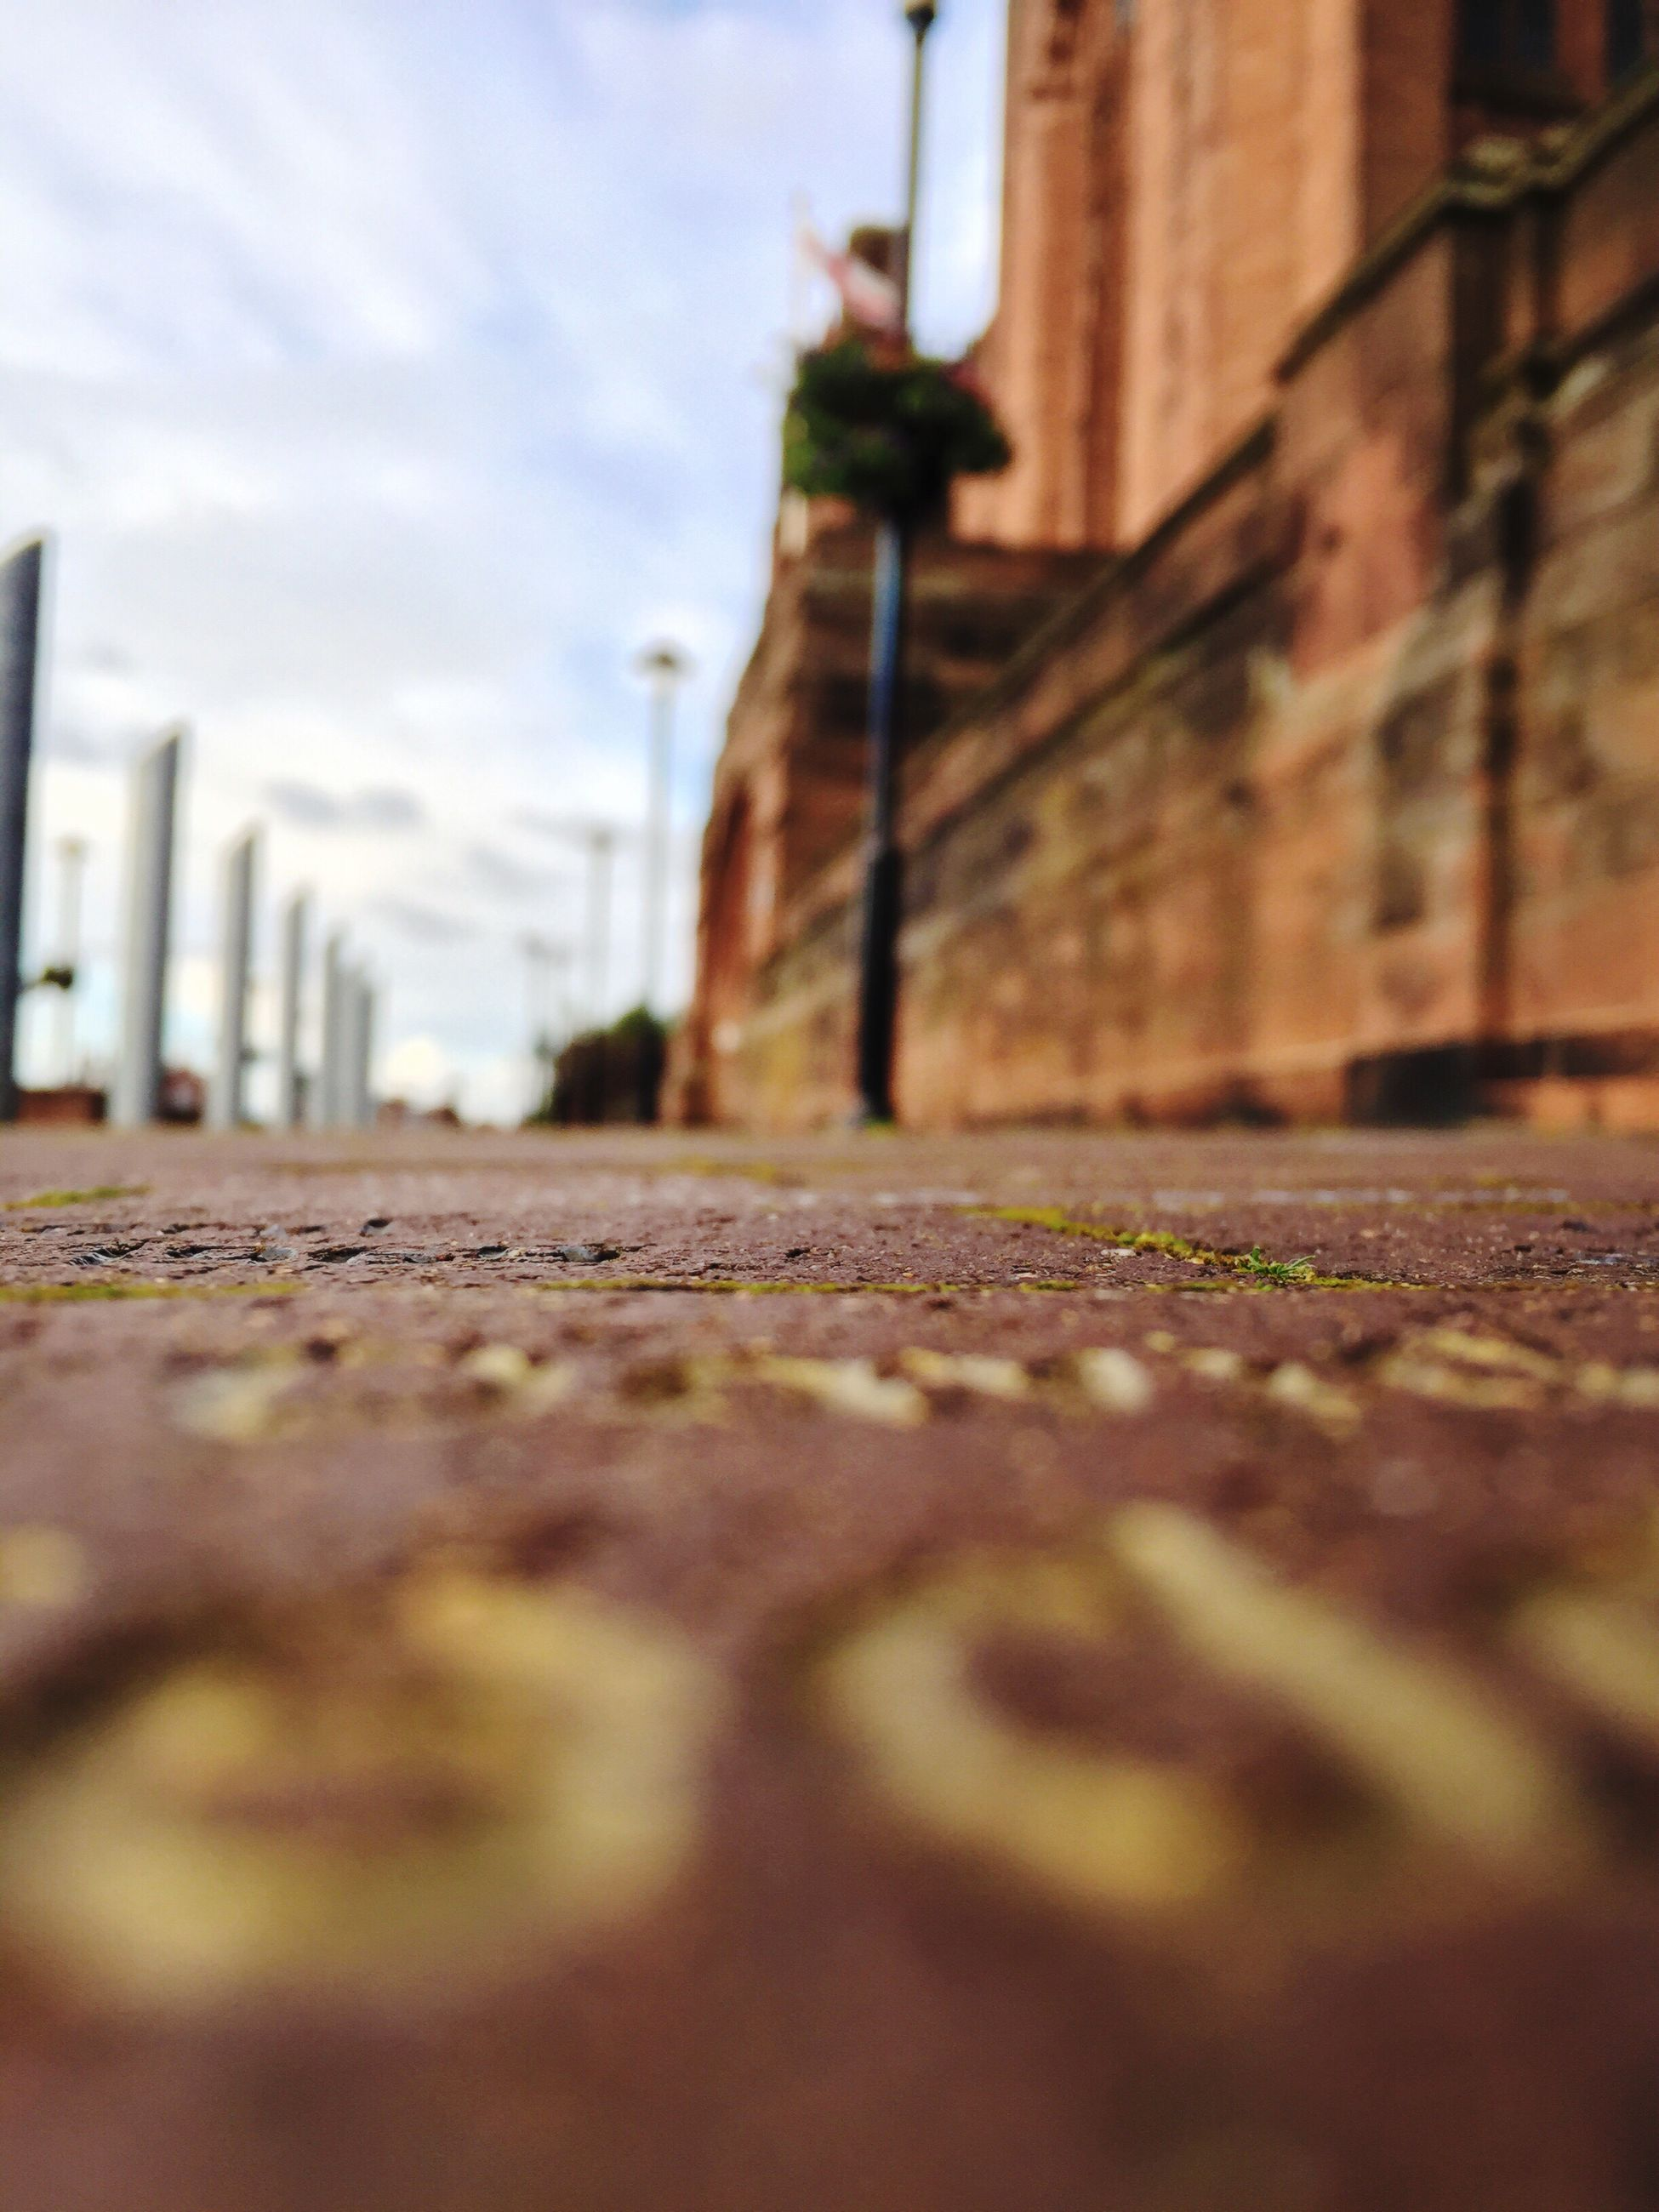 architecture, building exterior, built structure, surface level, no people, selective focus, outdoors, sky, day, close-up